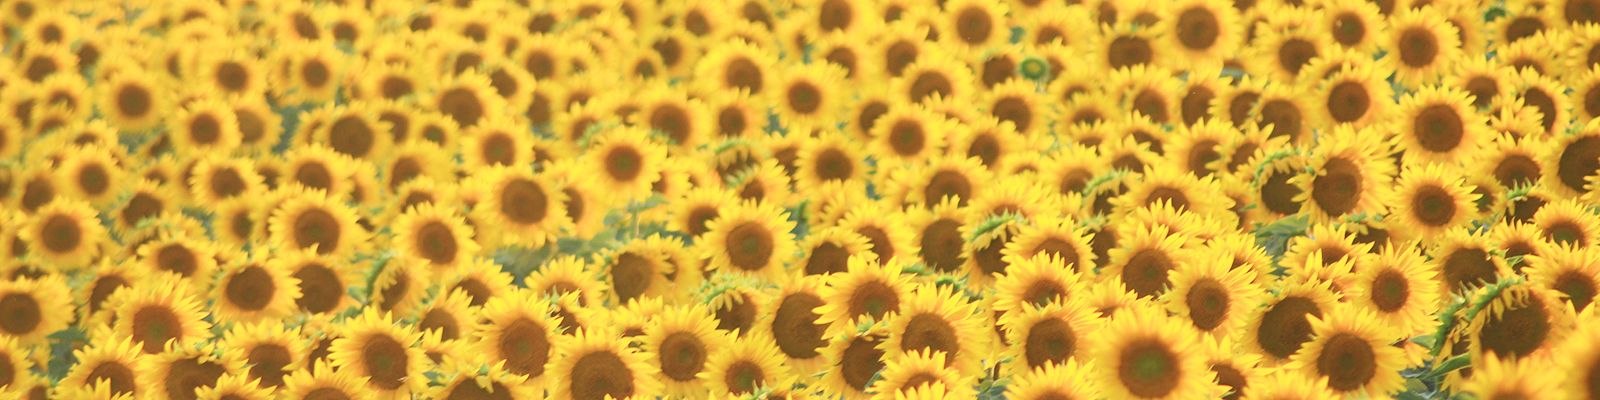 Photo of field of sunflowers